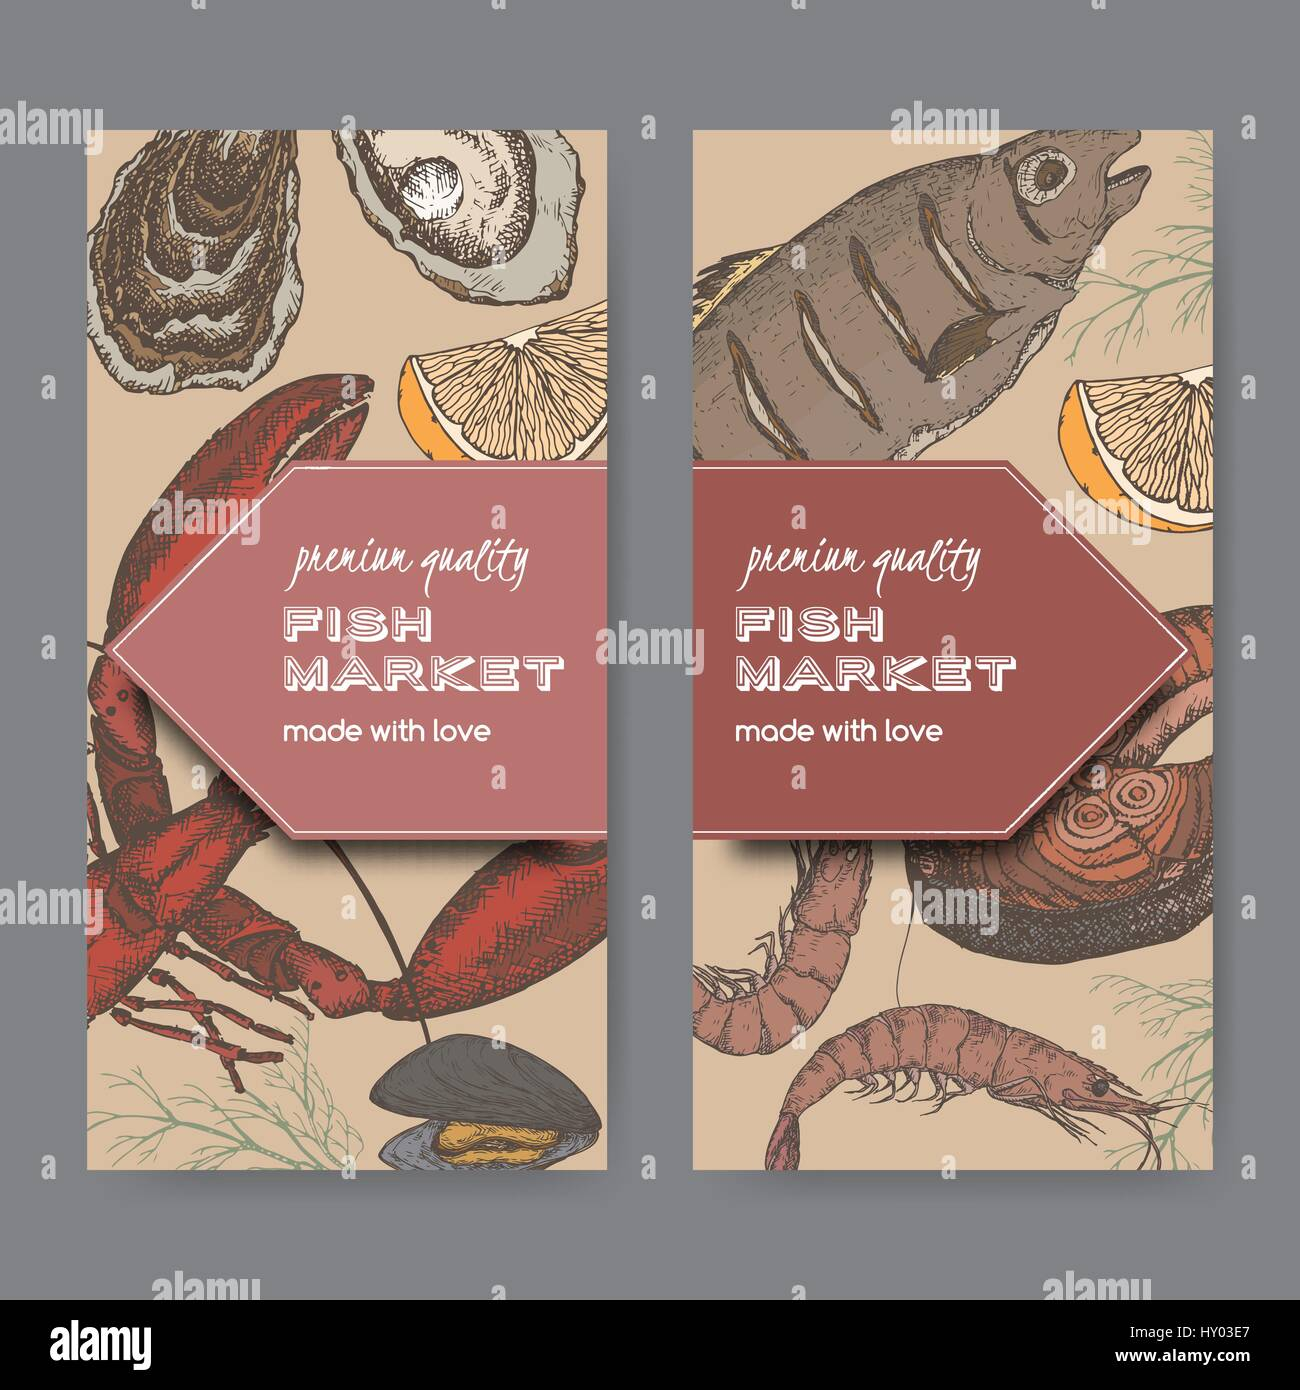 Fish Market Stock Vector Images - Alamy